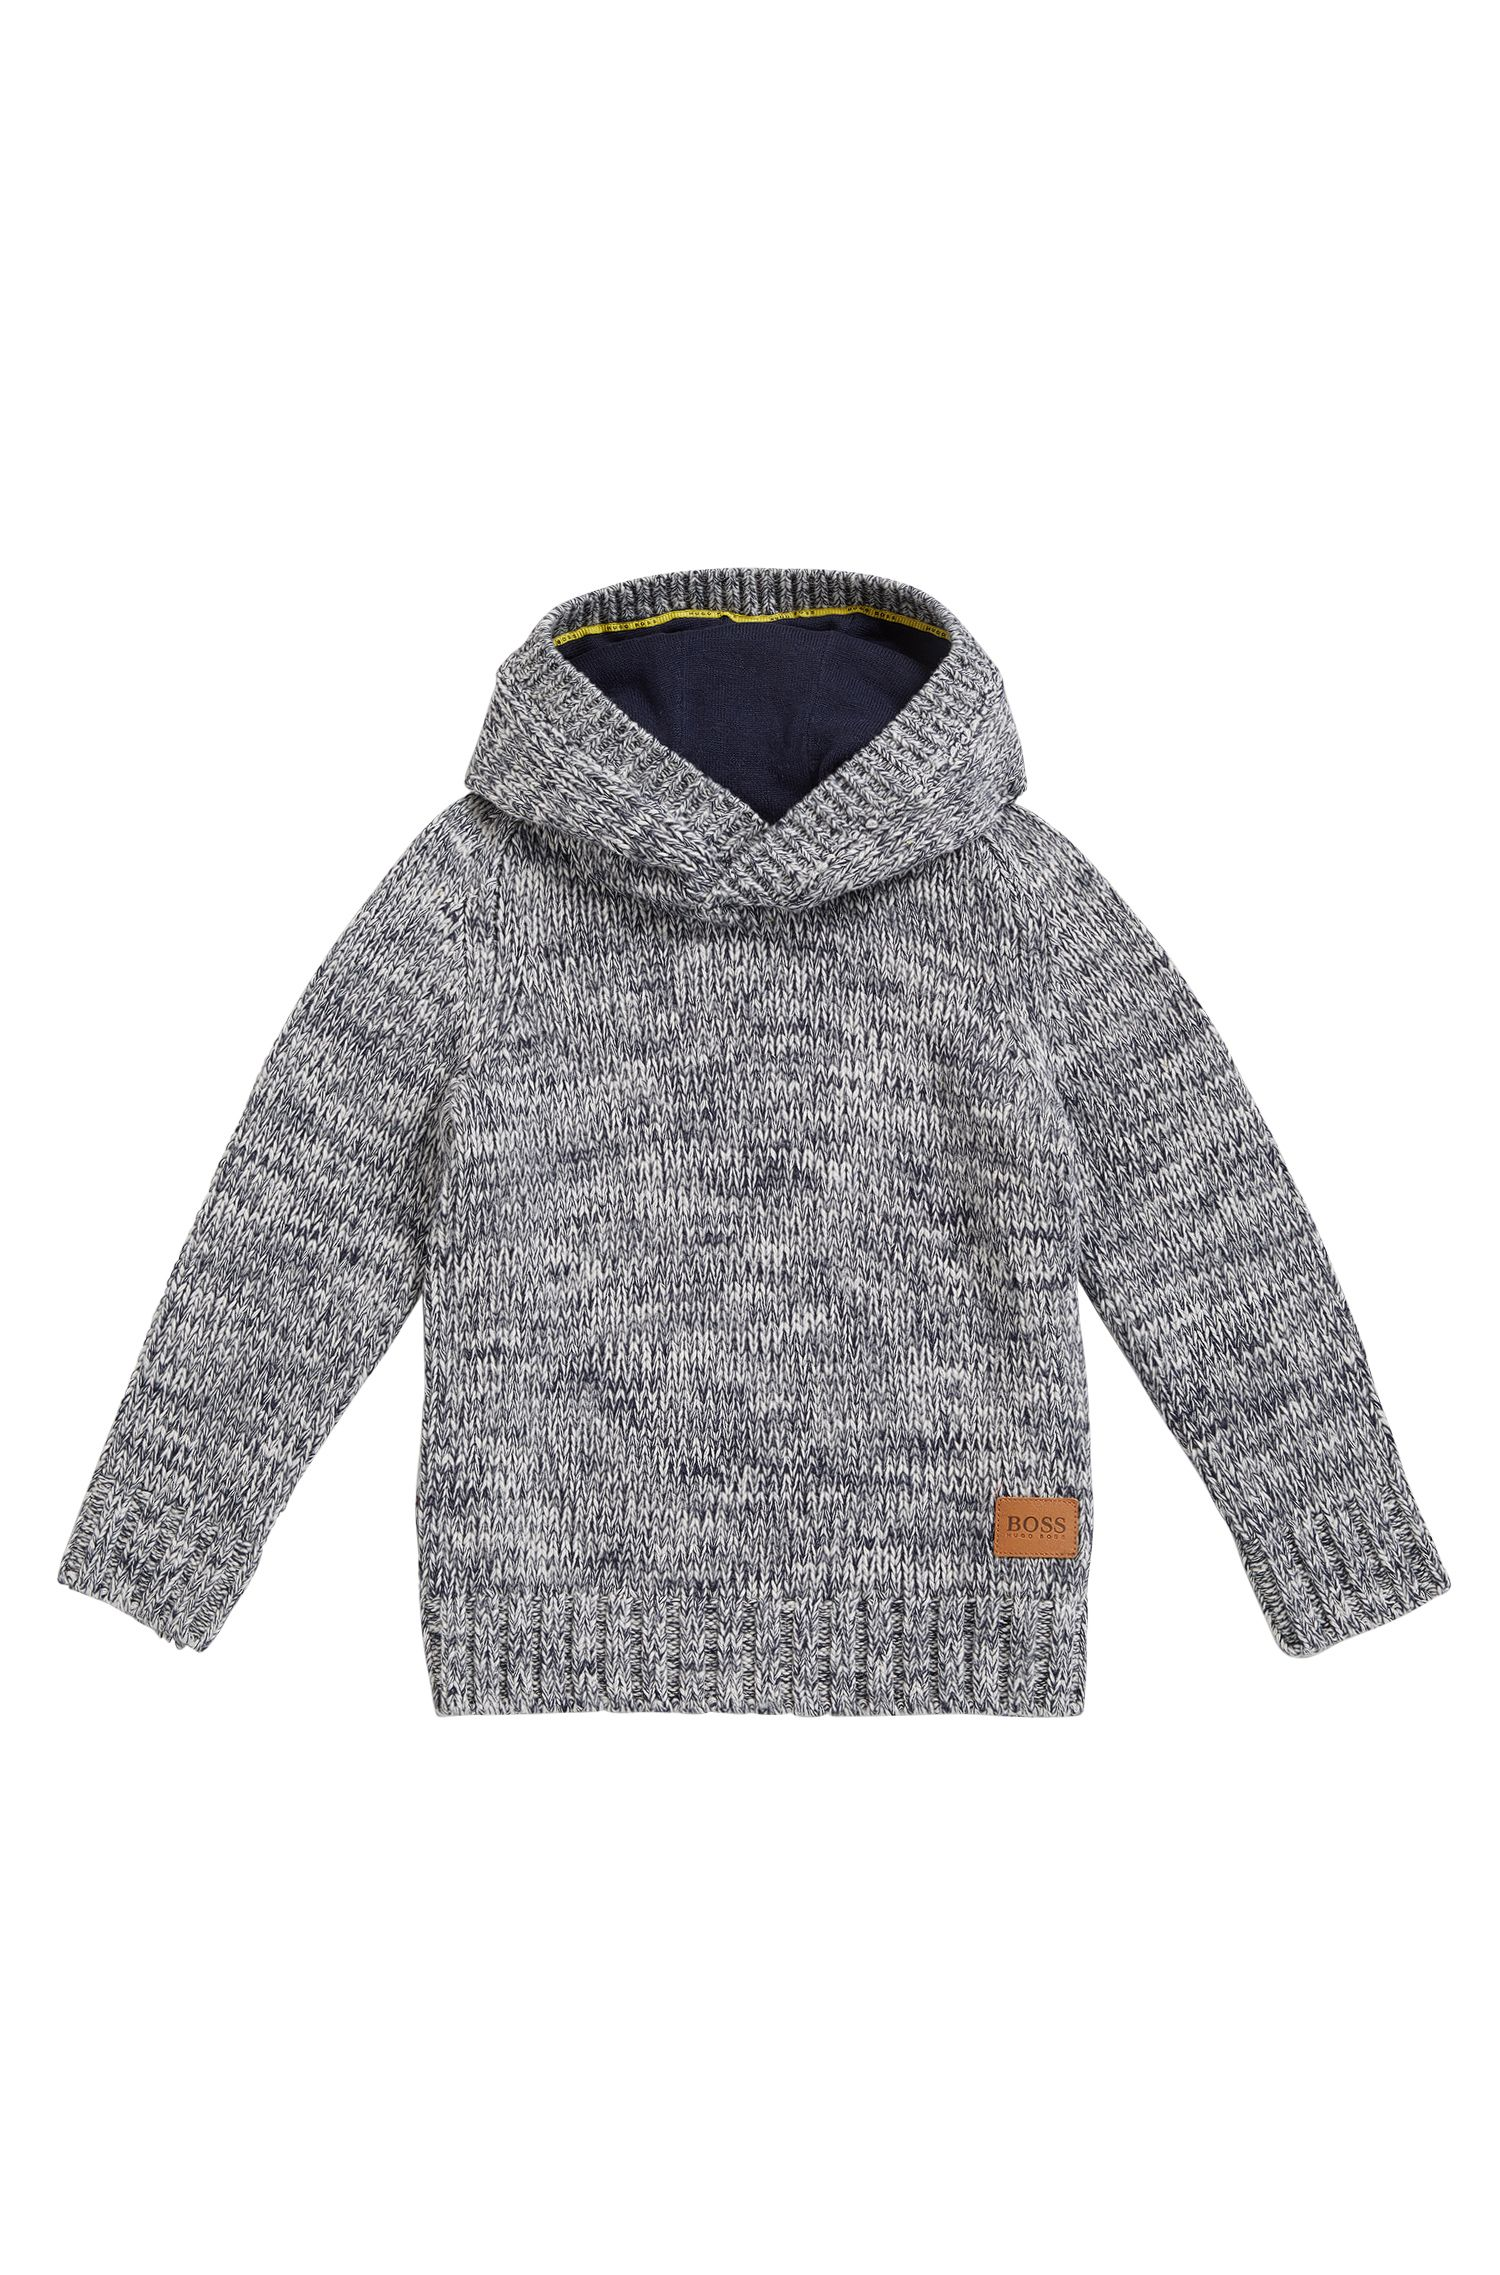 Kids' hooded sweater in combed cotton